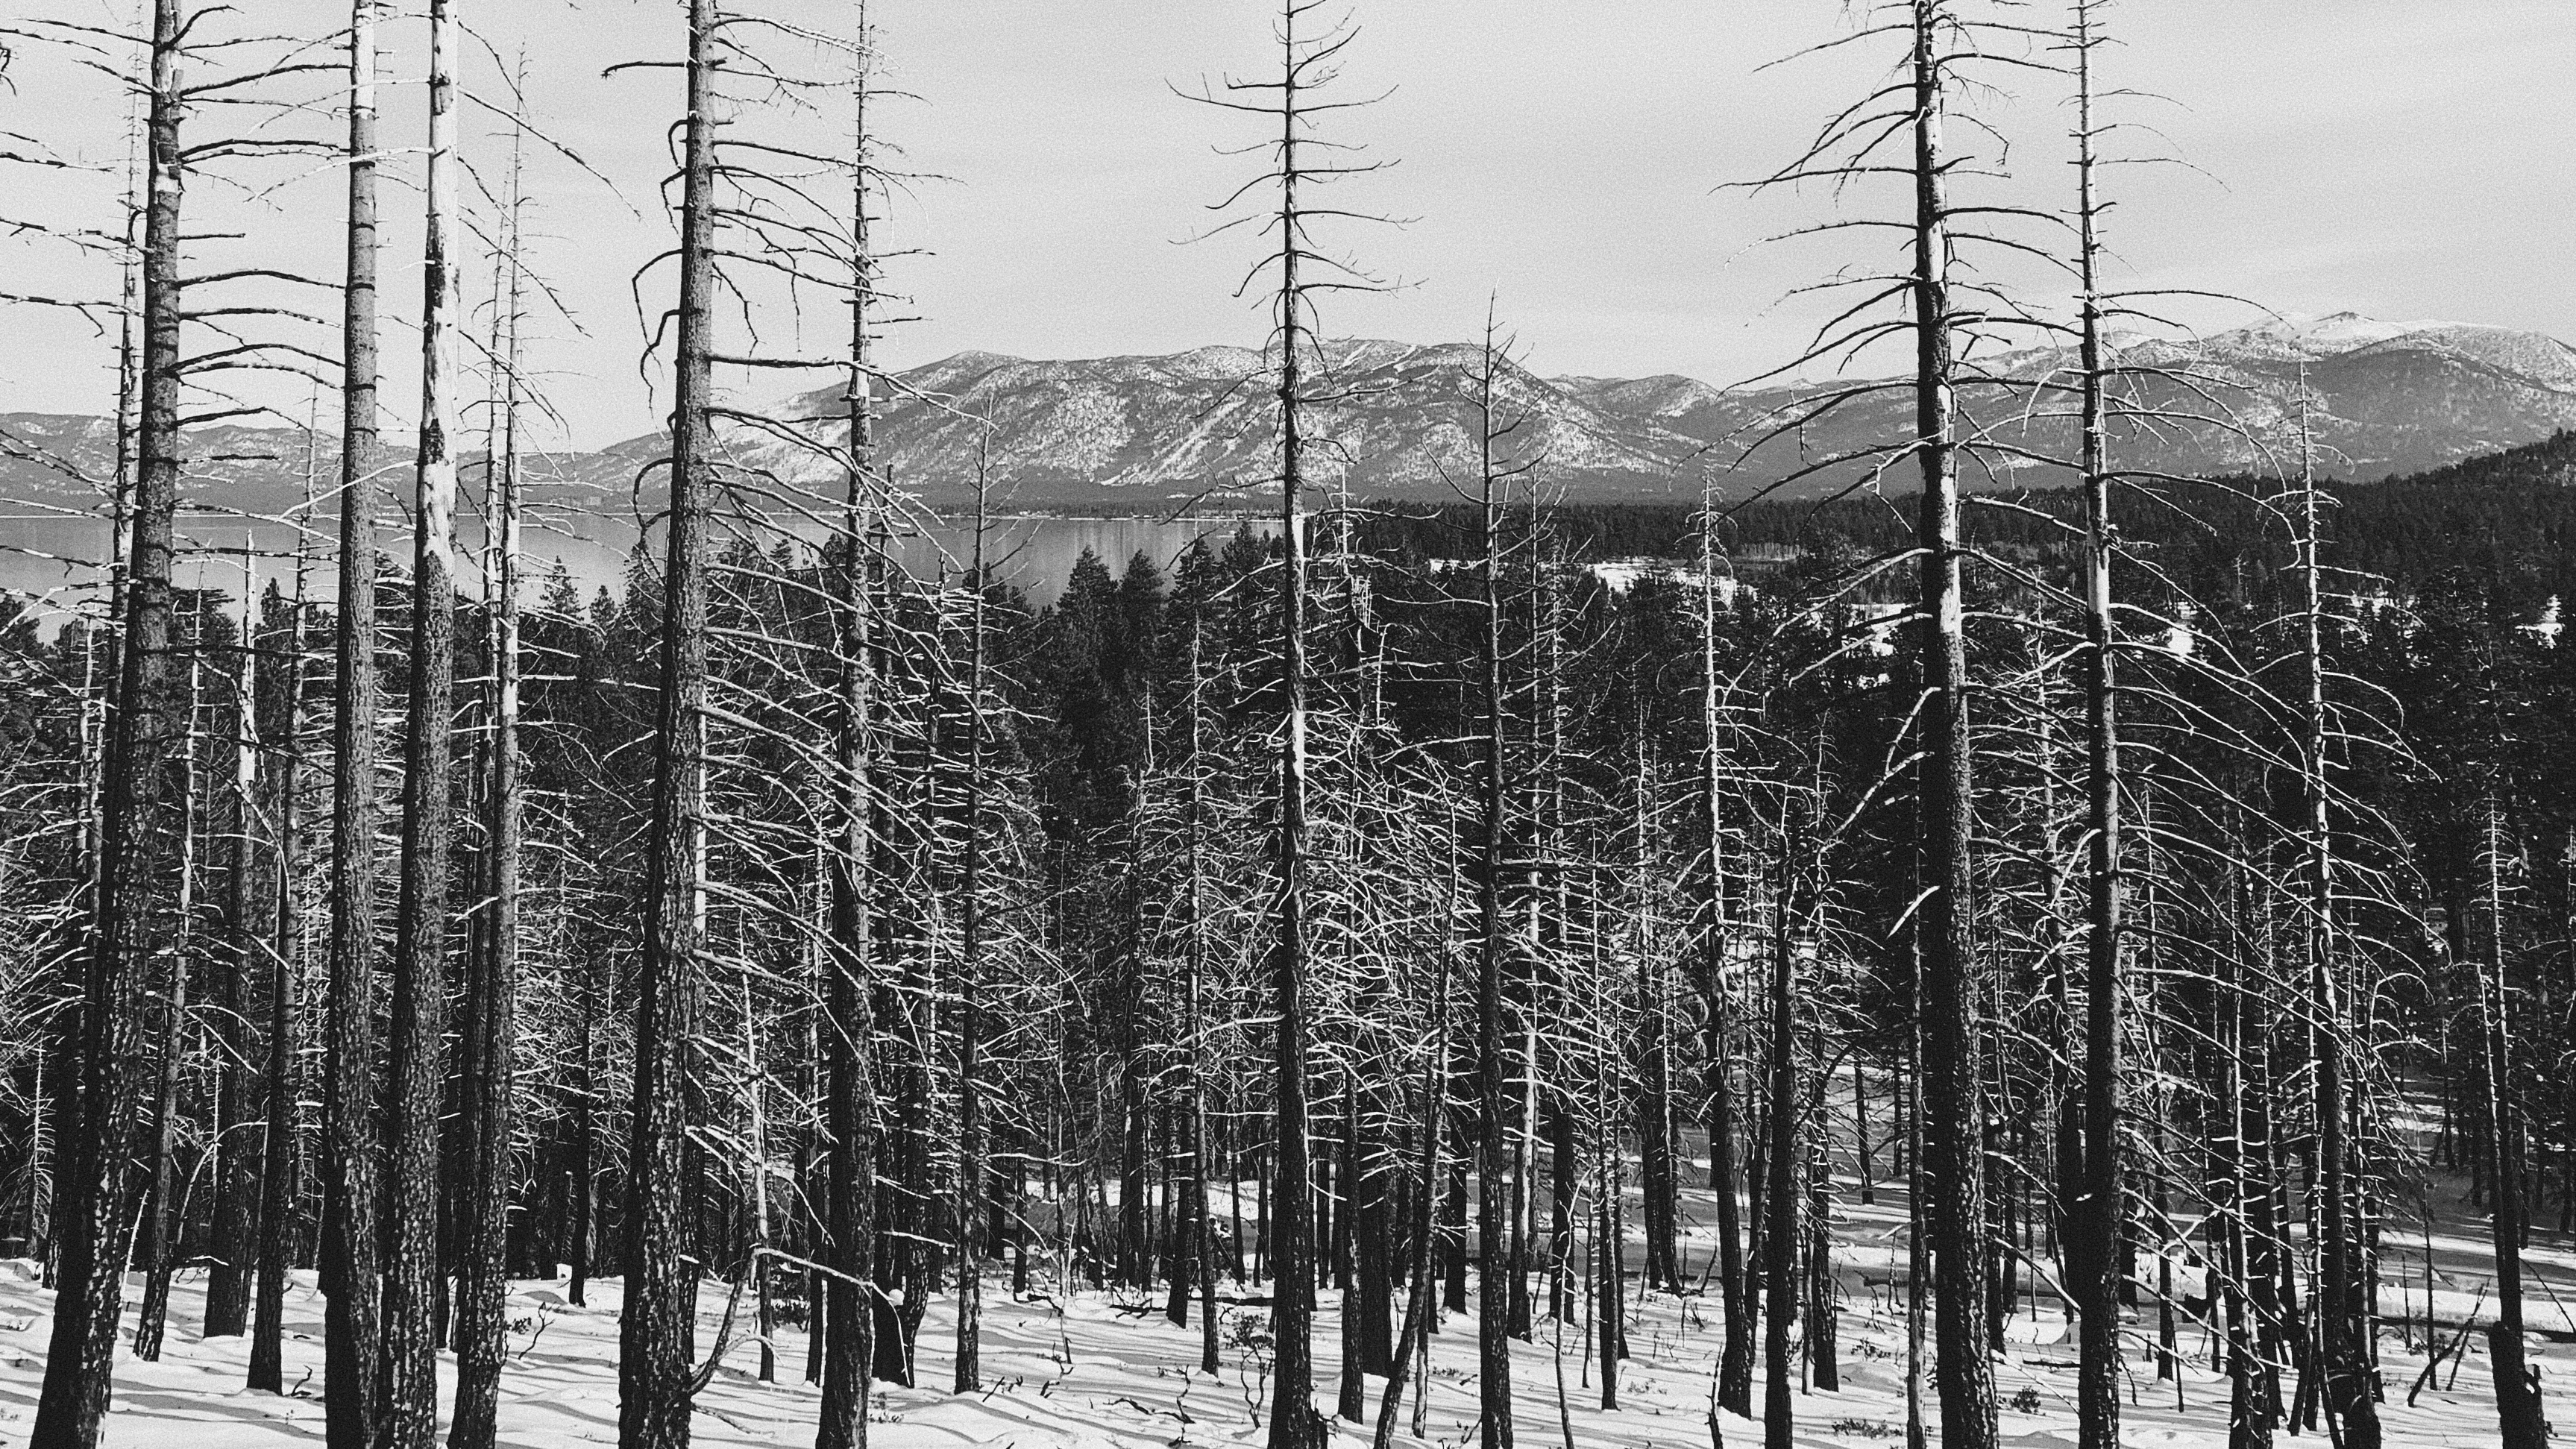 Trees near Lake Tahoe